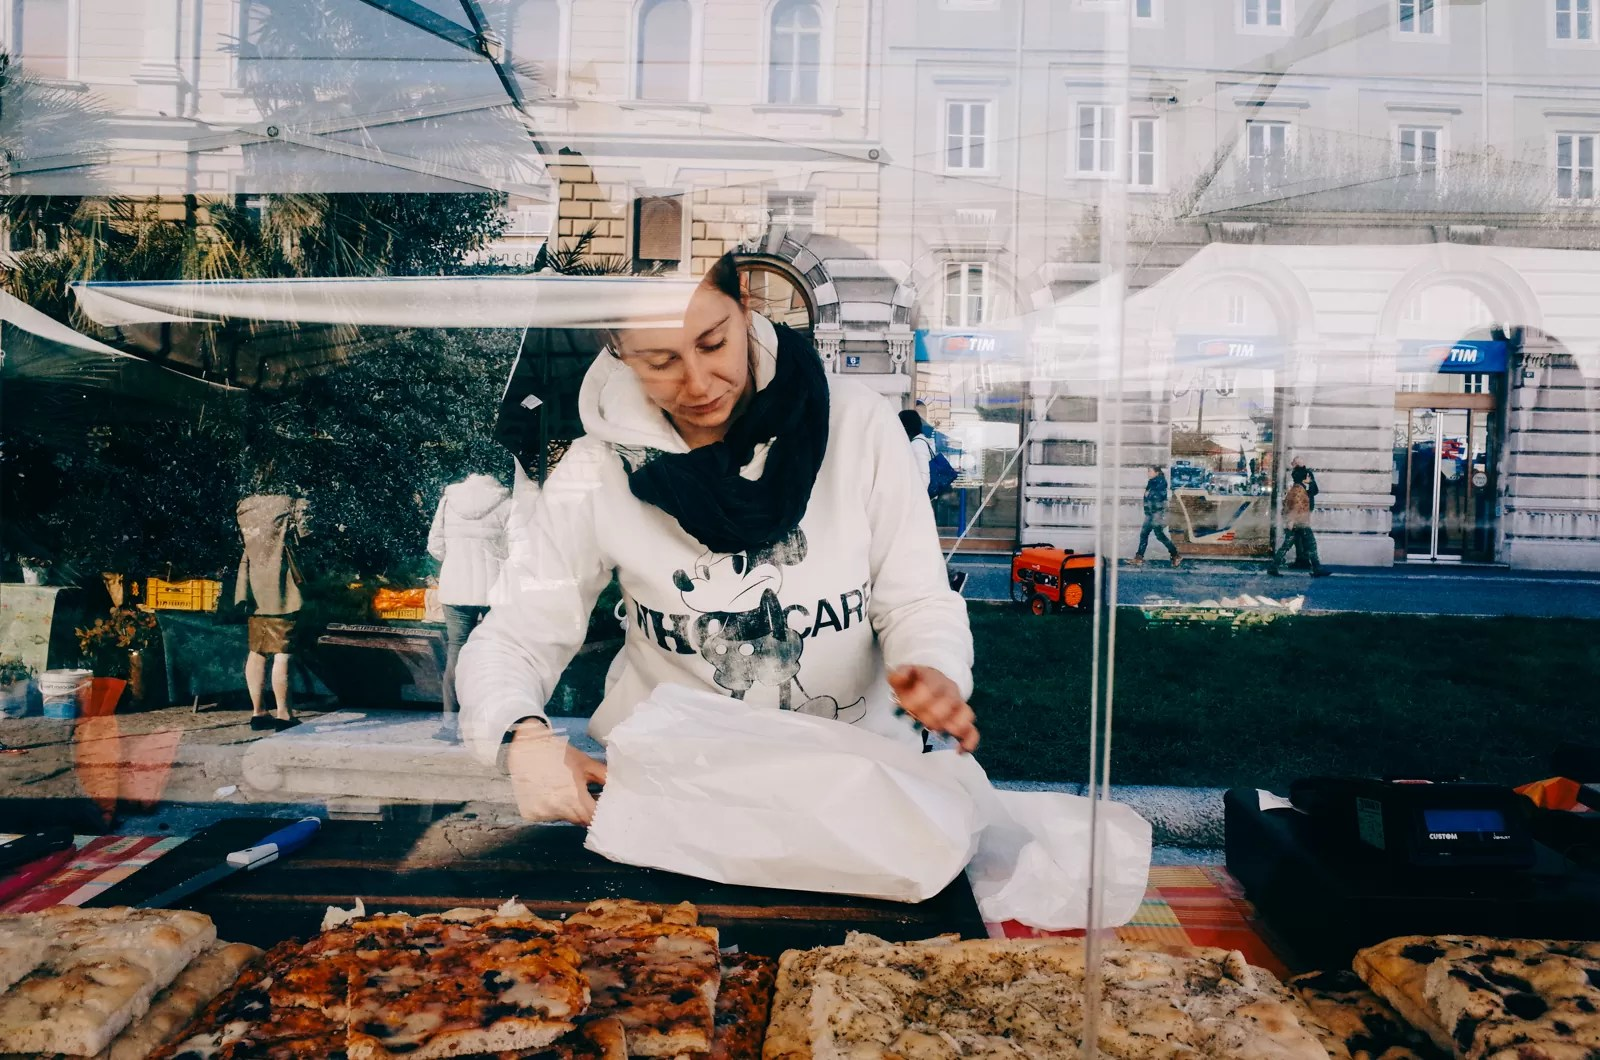 R0006671 - One Day in Trieste [Color Street Photography] - fotostreet.it